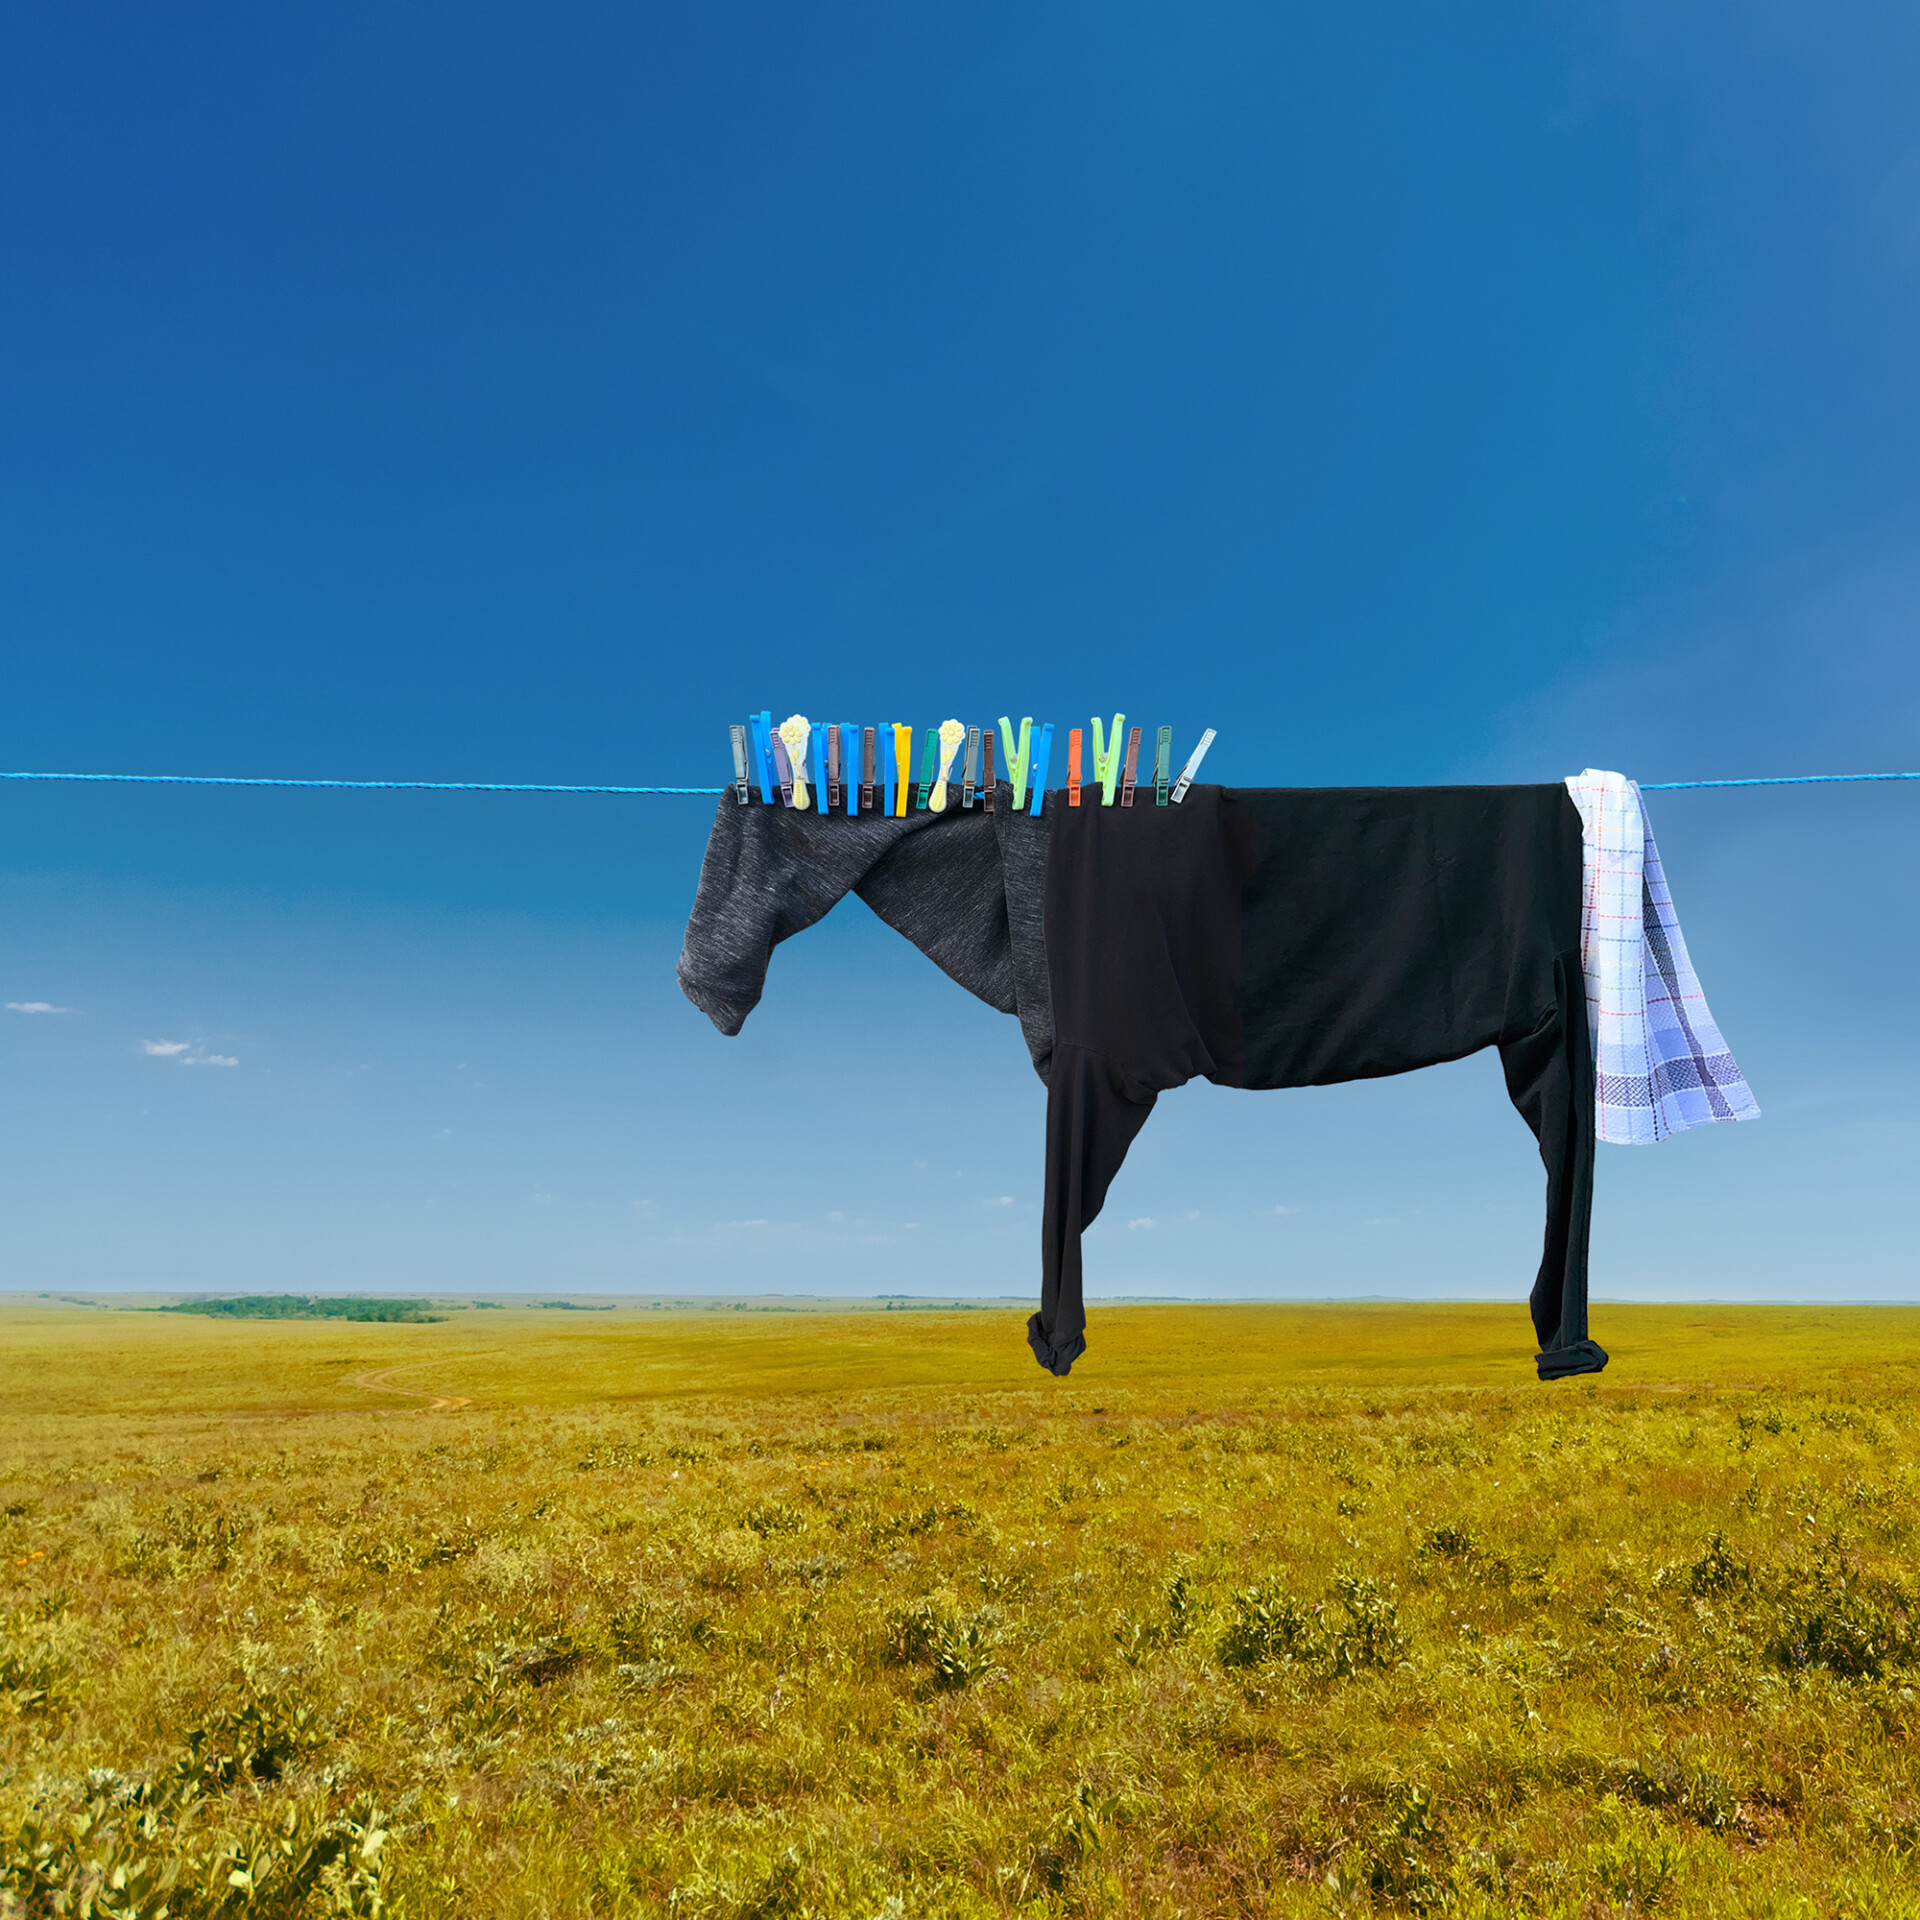 A photo of some clothes on a clothesline in a field on a sunny, blue-sky day. The clothes are arranged to look like a horse standing in profile, with clothespins along the top of the head and neck to look like the hair.